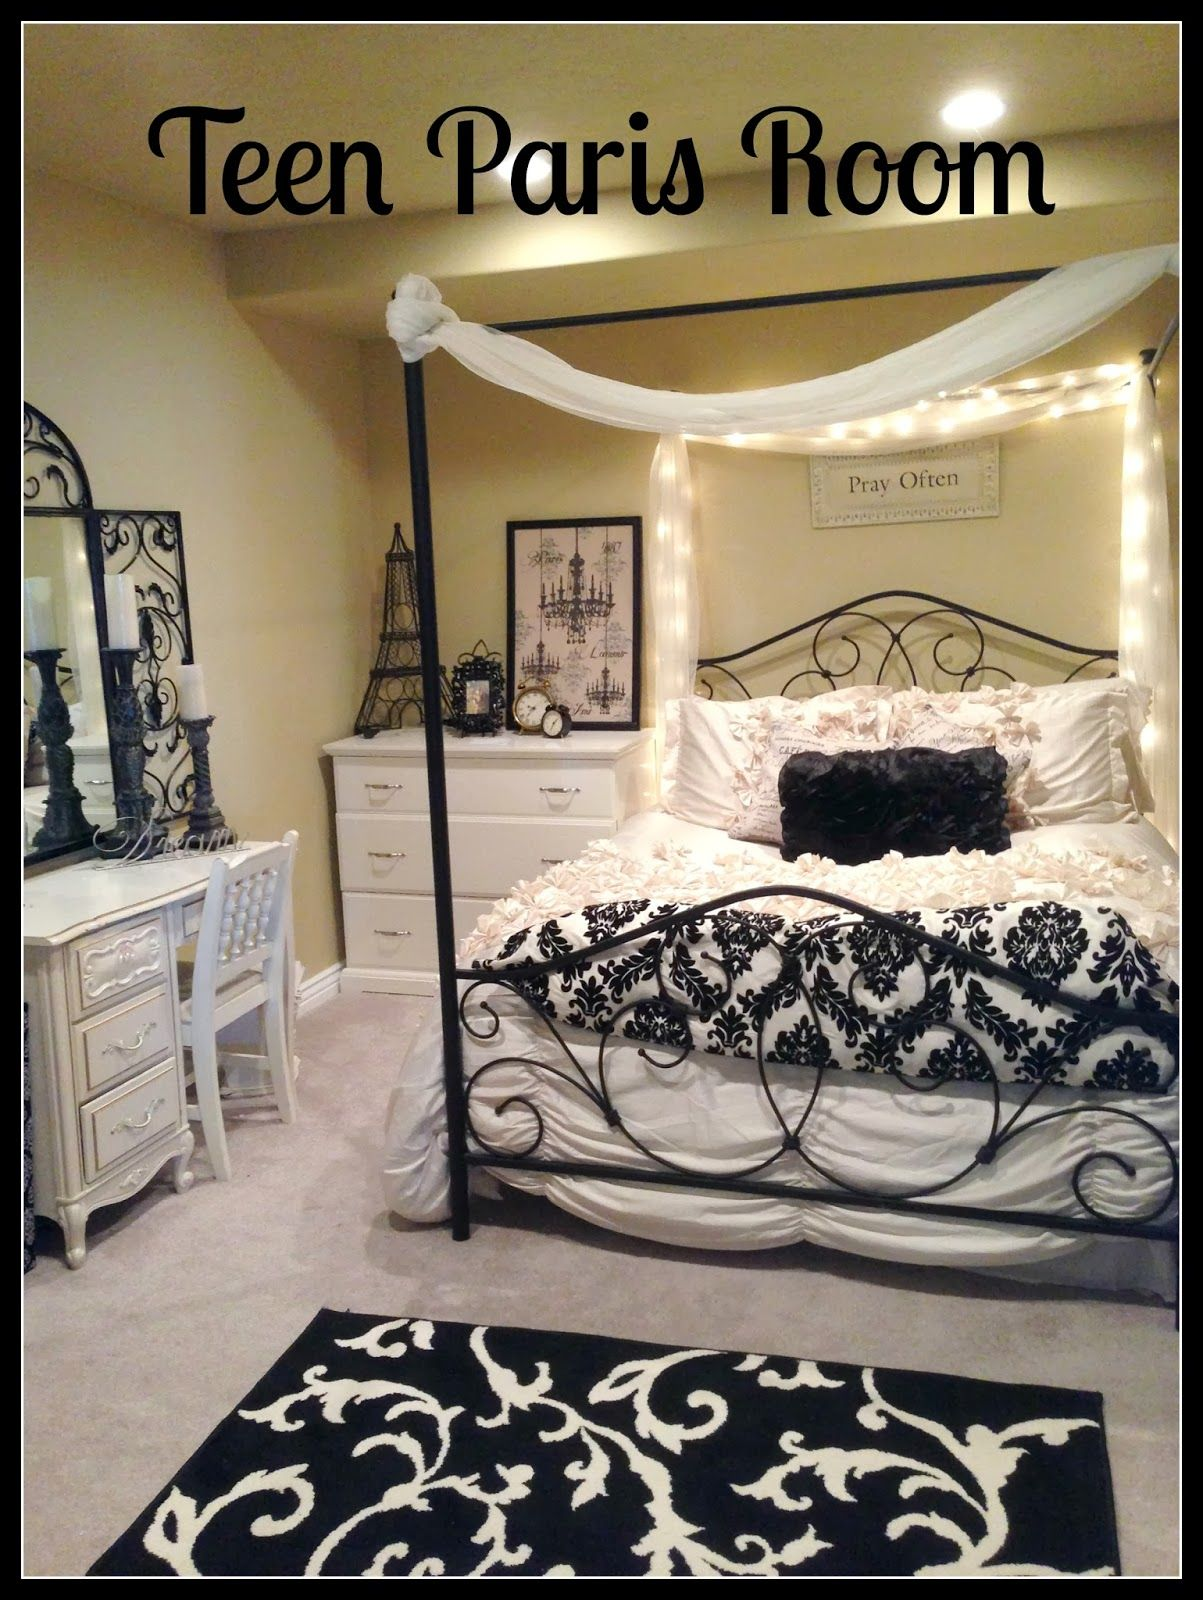 paris themed bedroom ideas – plataformamovimientosocial.org